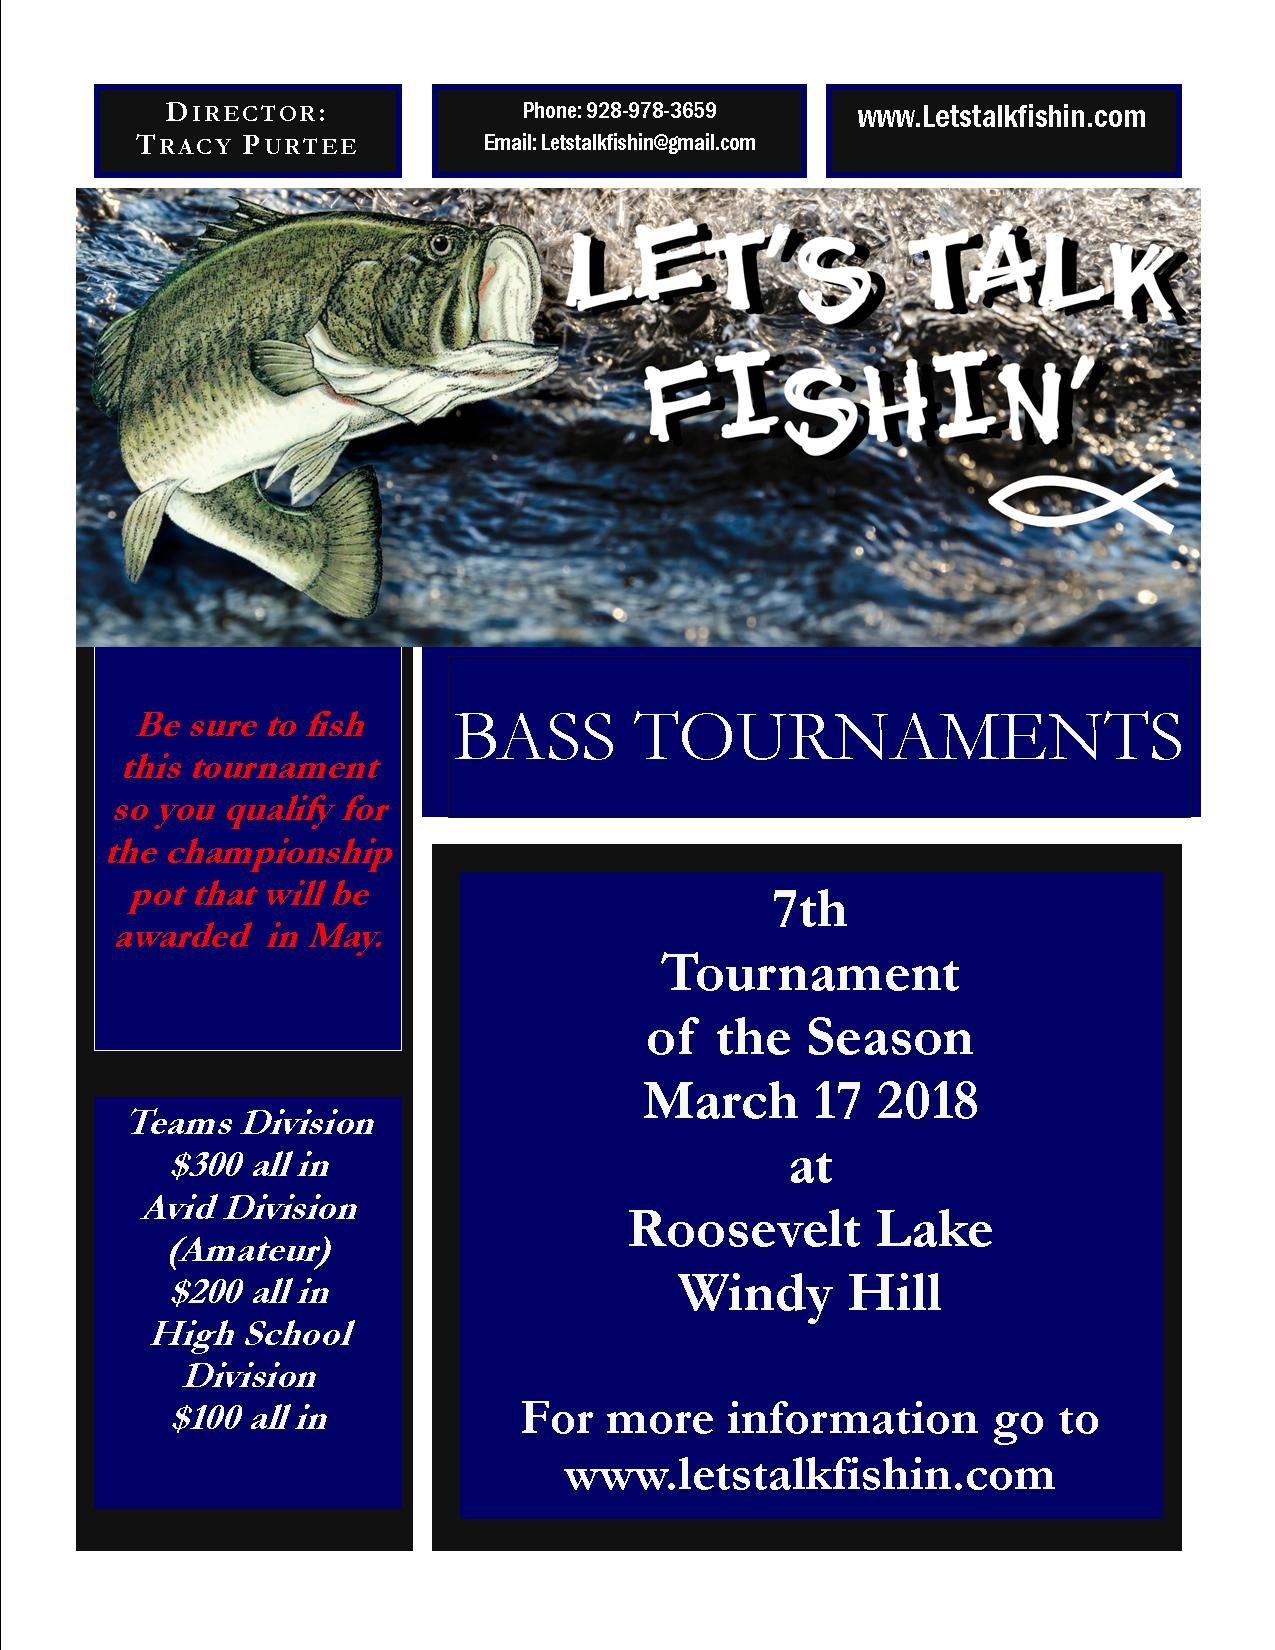 Click image for larger version  Name:7th Tournament.jpg Views:1026 Size:283.6 KB ID:96826